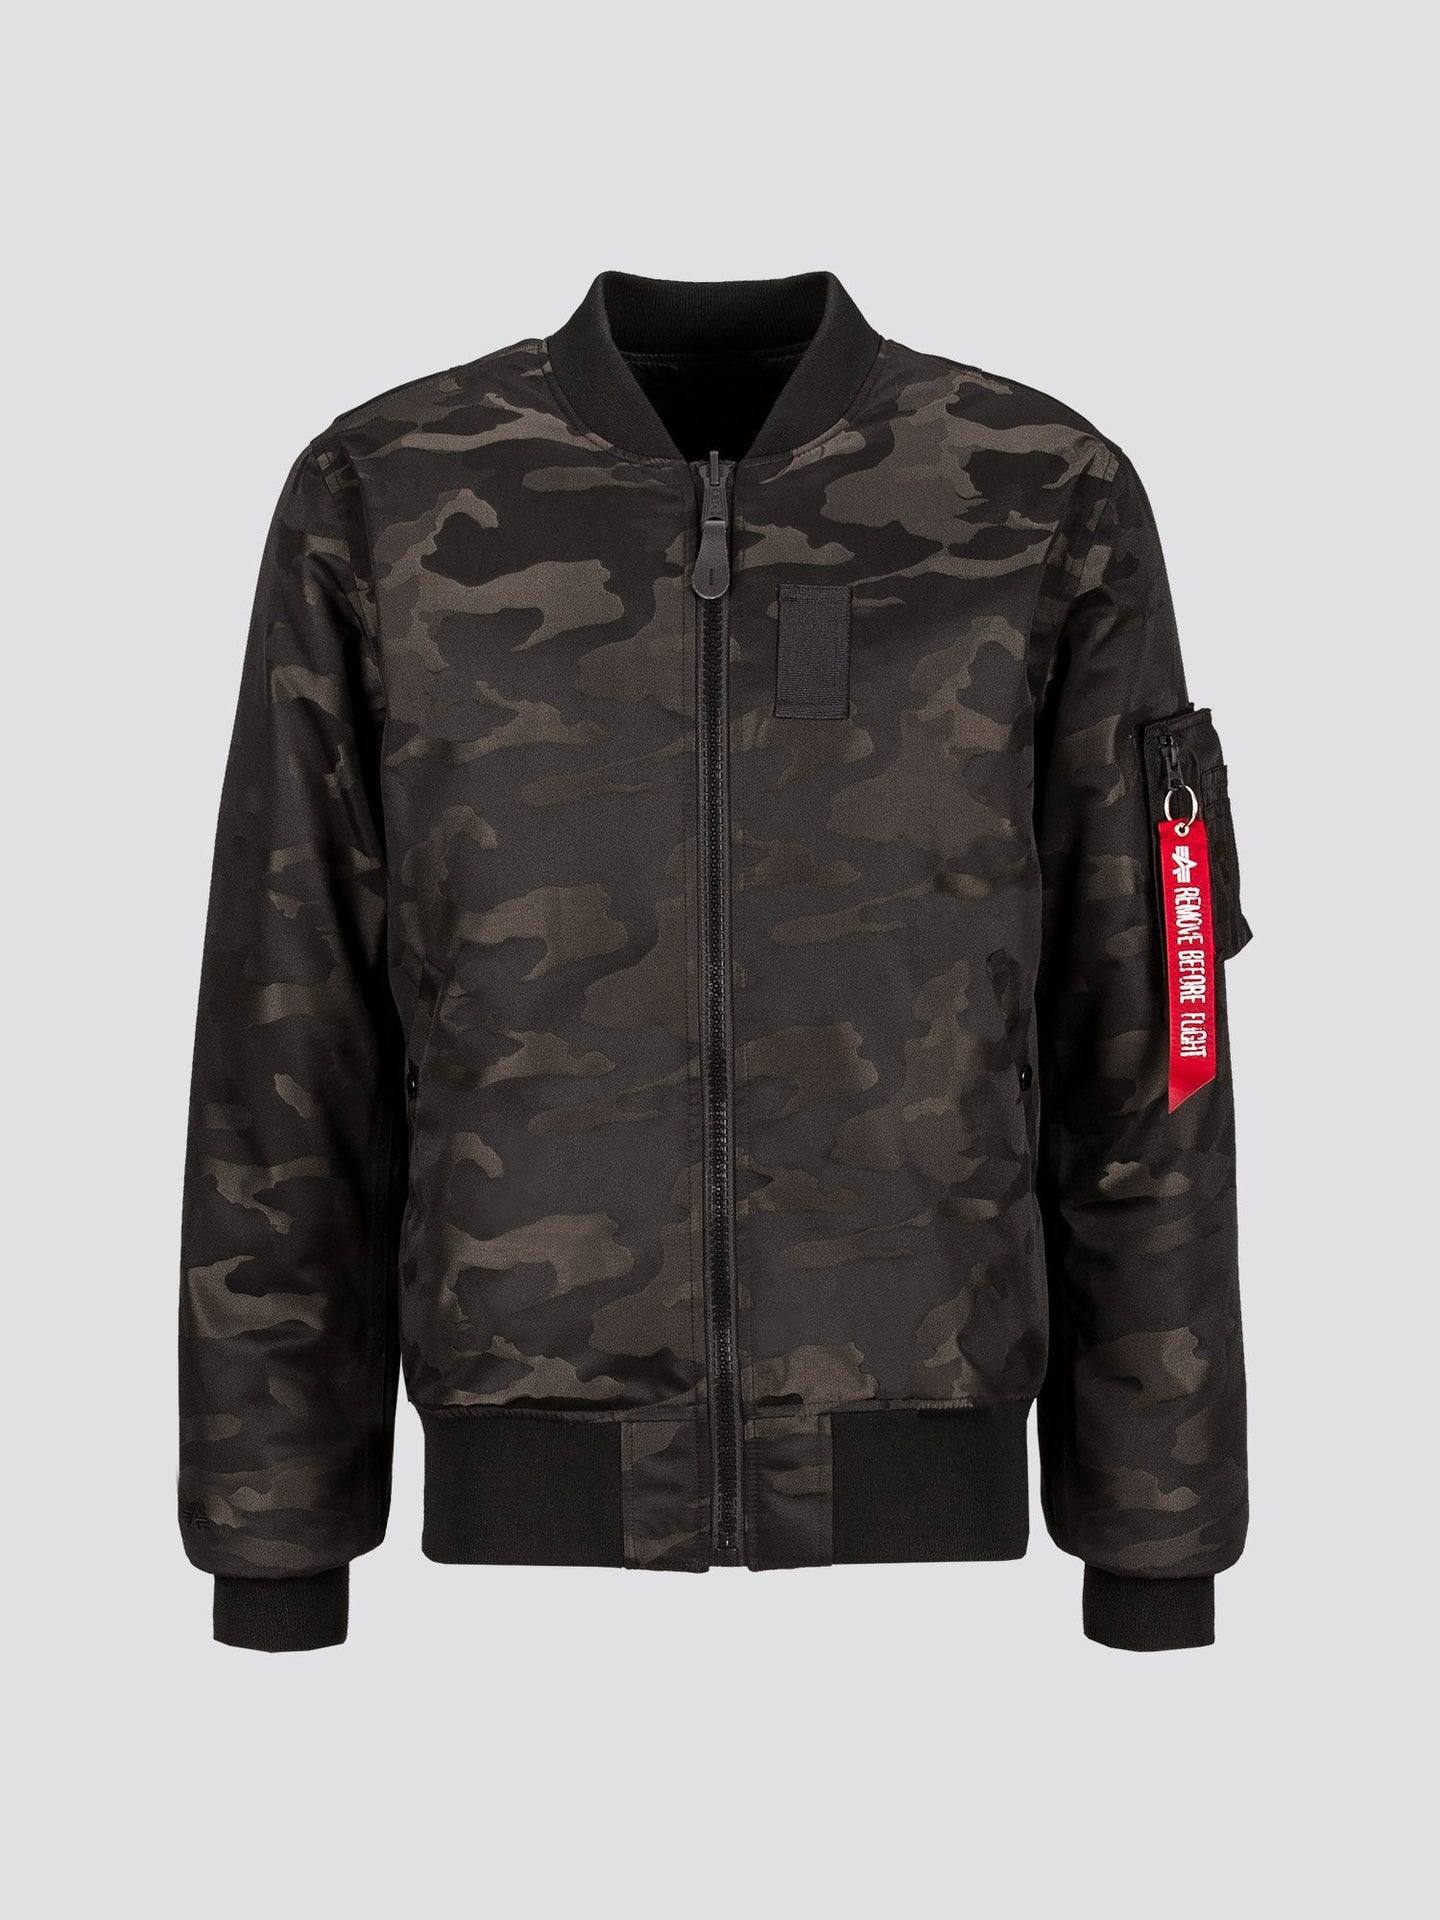 MA-1 DOWN JACQUARD BOMBER JACKET OUTERWEAR Alpha Industries BLACK CAMO 2XL